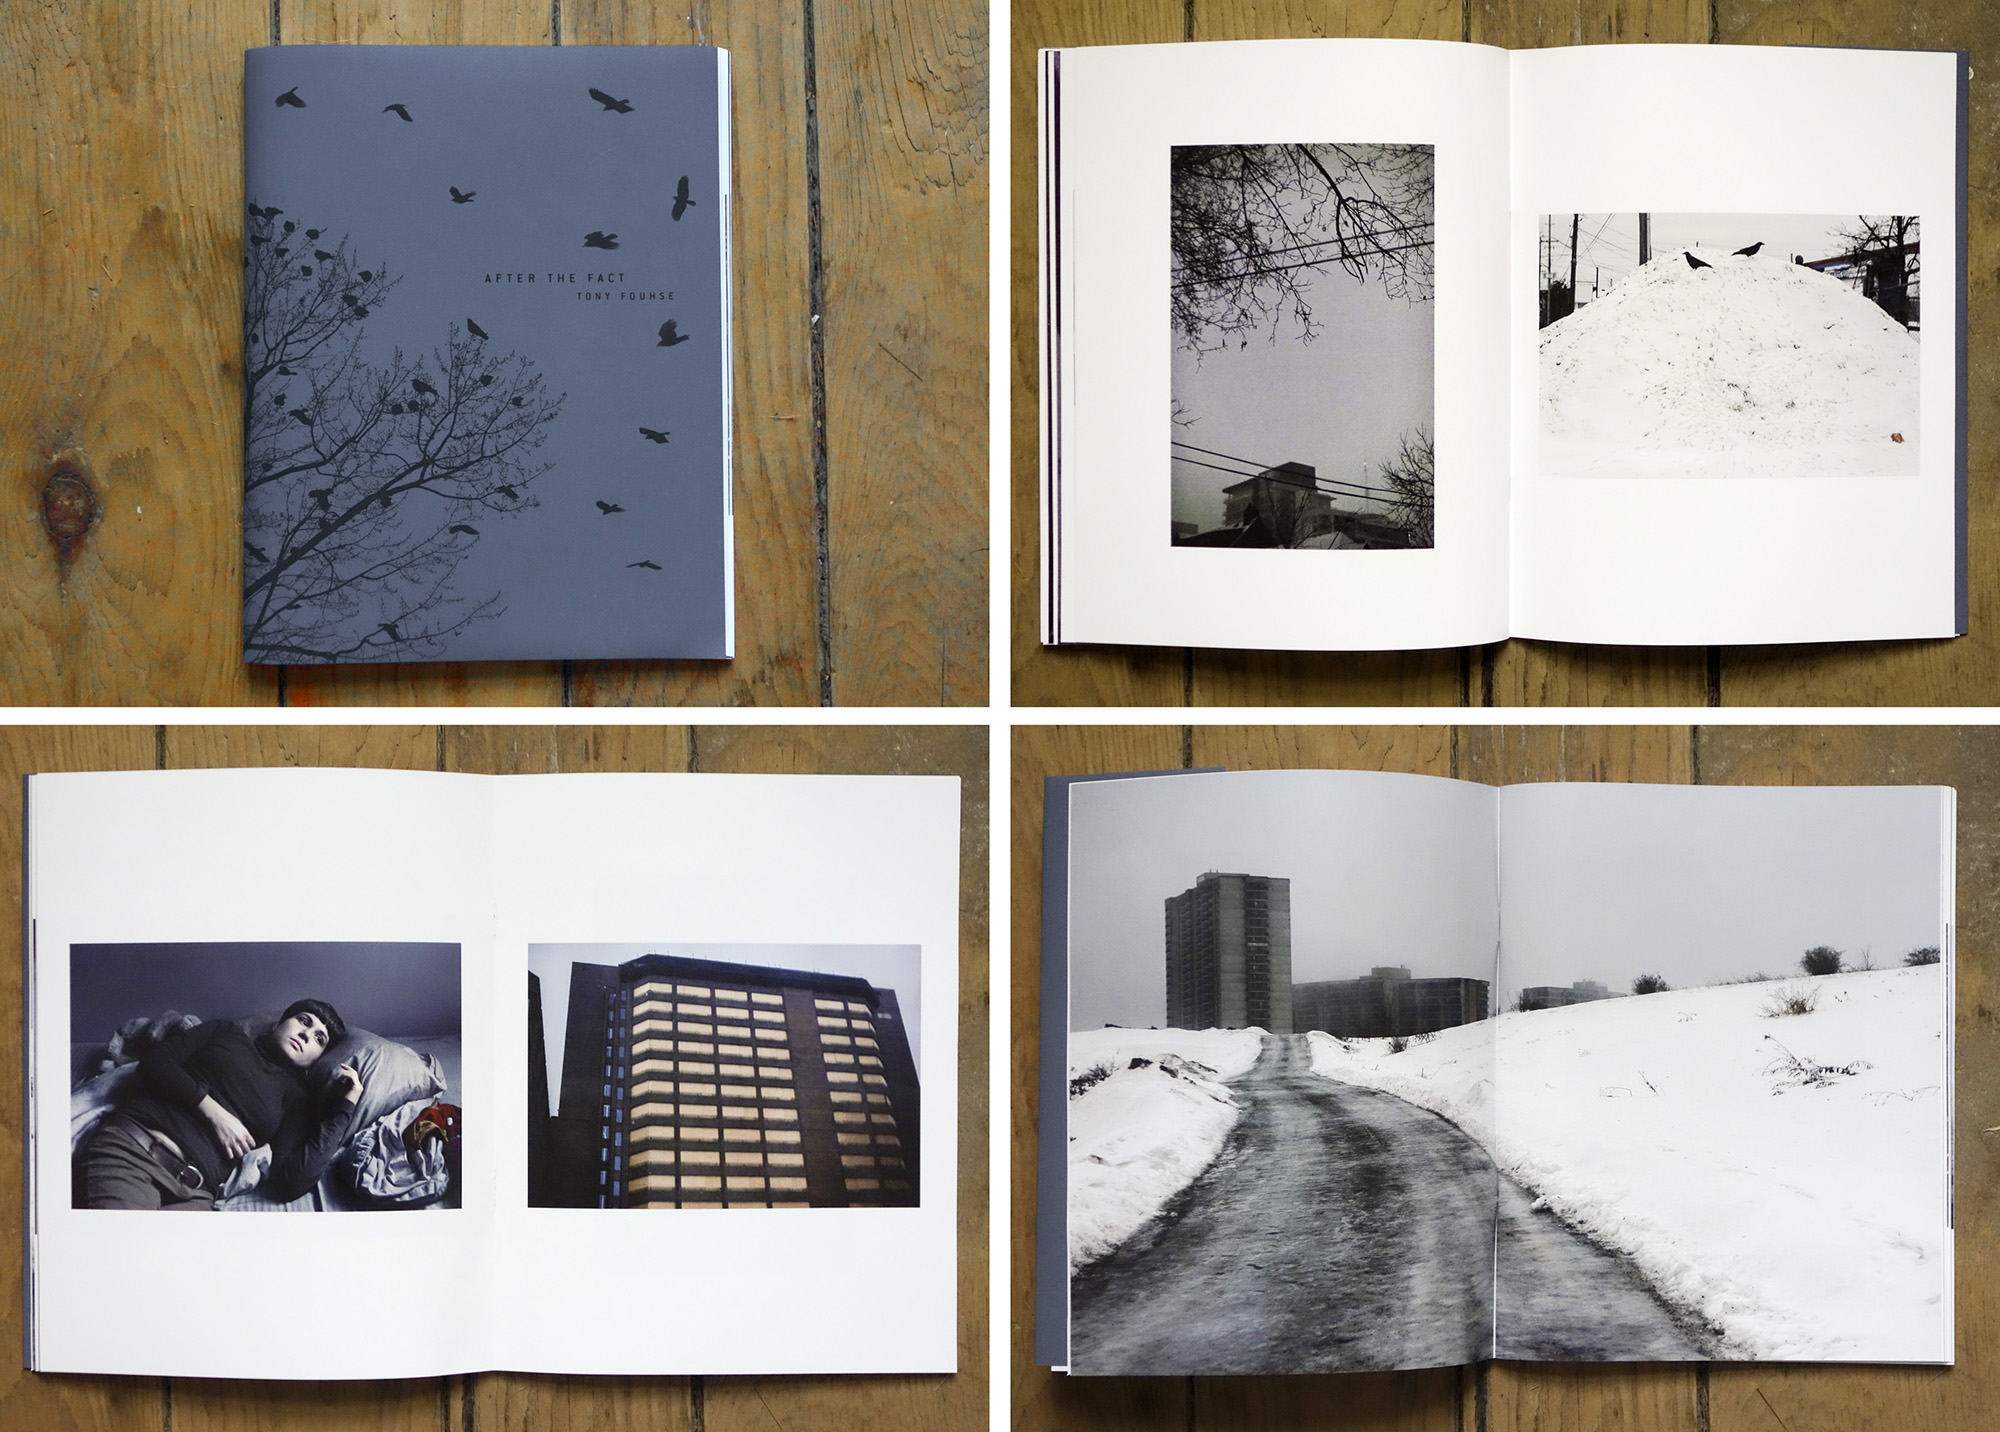 page spreads from AFTER THE FACT by Tony Fouhse